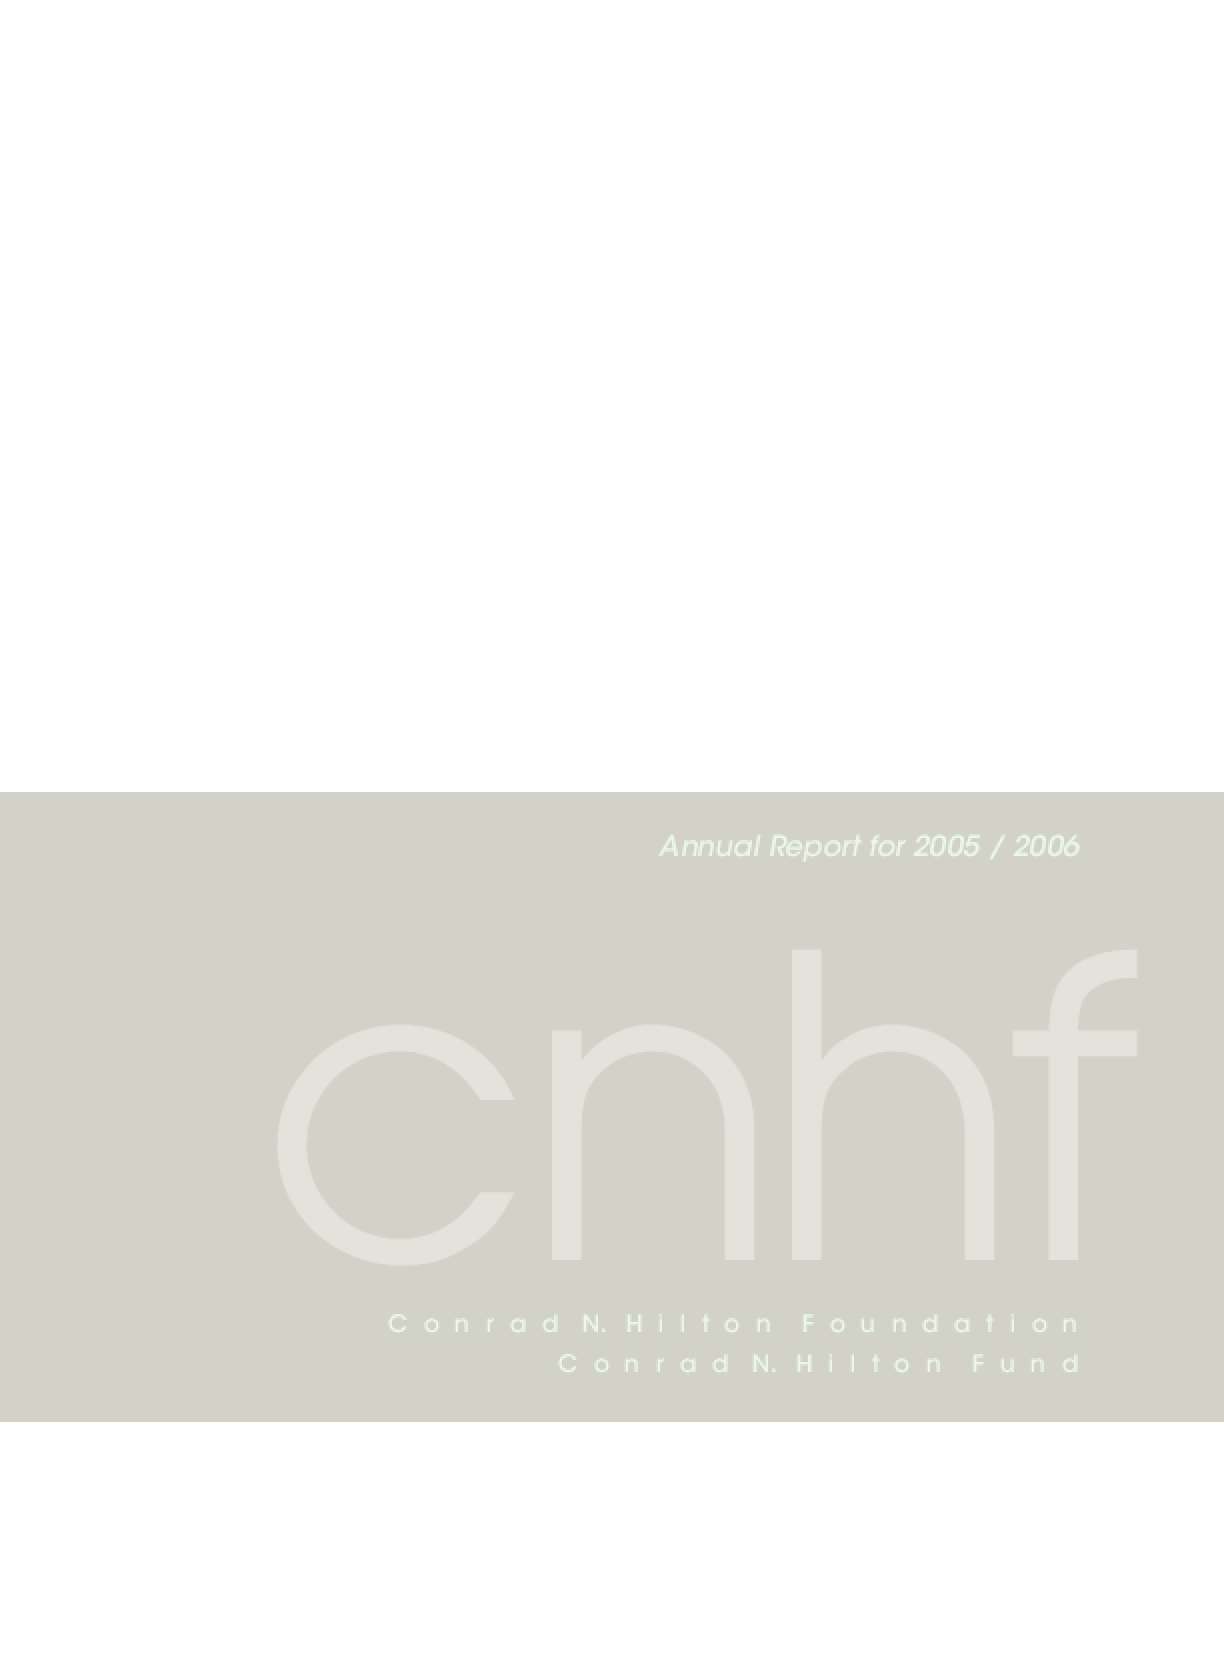 Conrad N. Hilton Foundation - 2005-2006 Annual Report